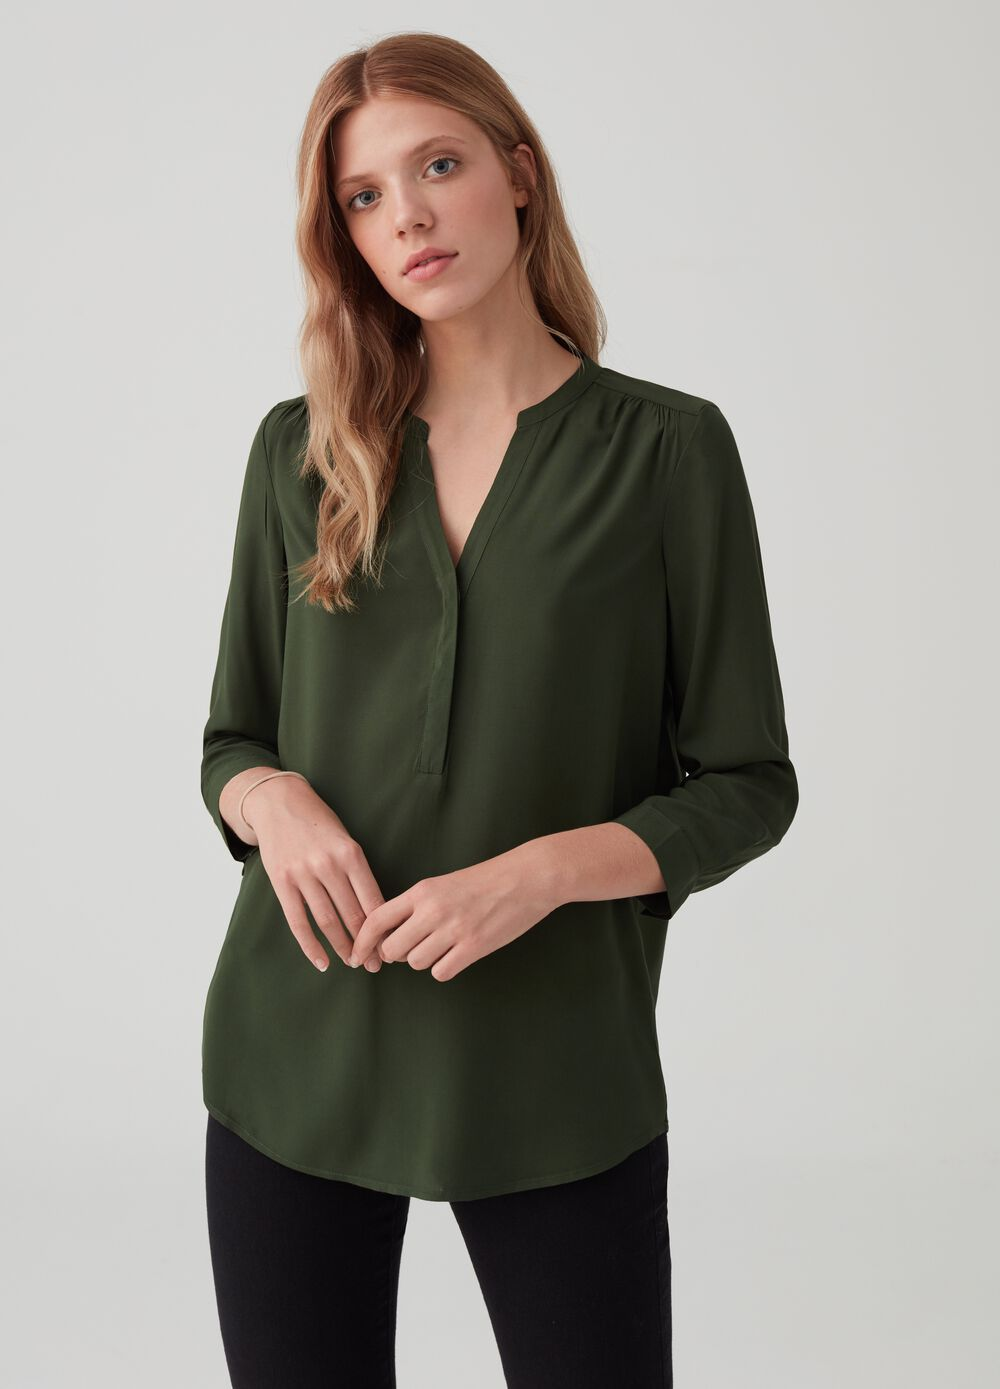 Blouse in 100% viscose with V opening